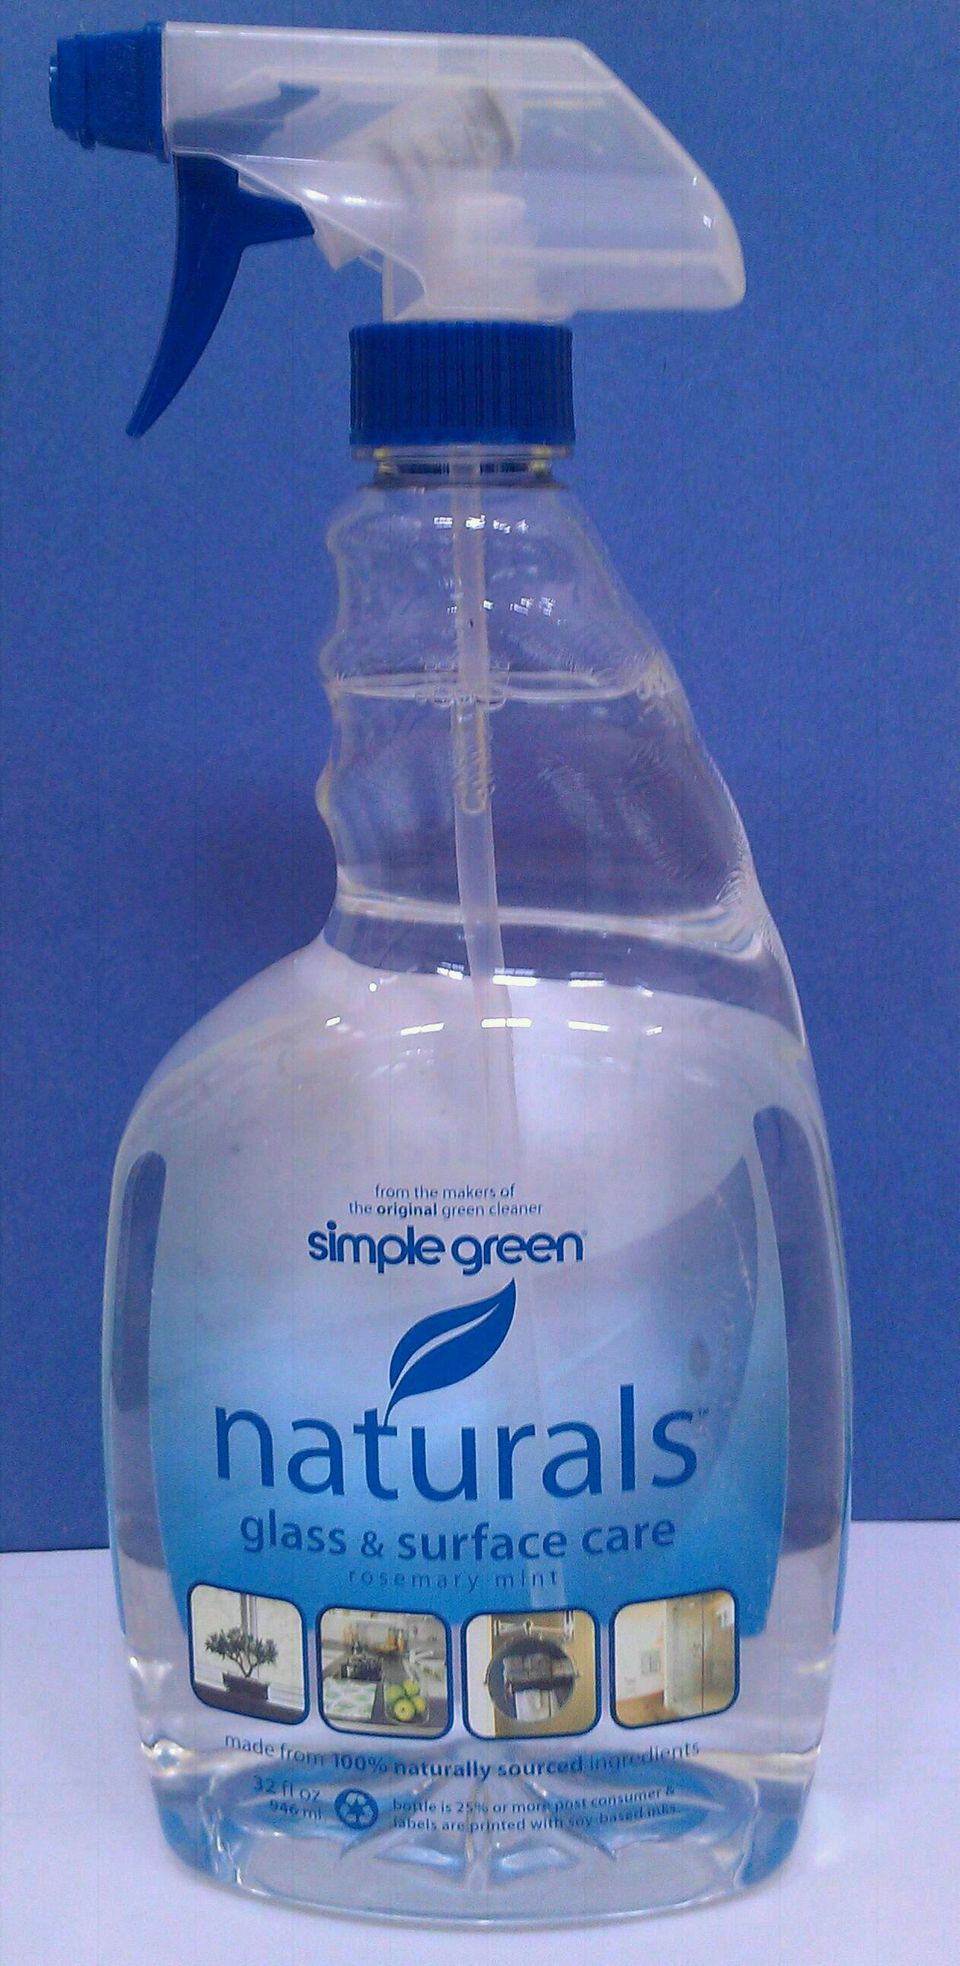 Simple Green Naturals Glass & Surface Care